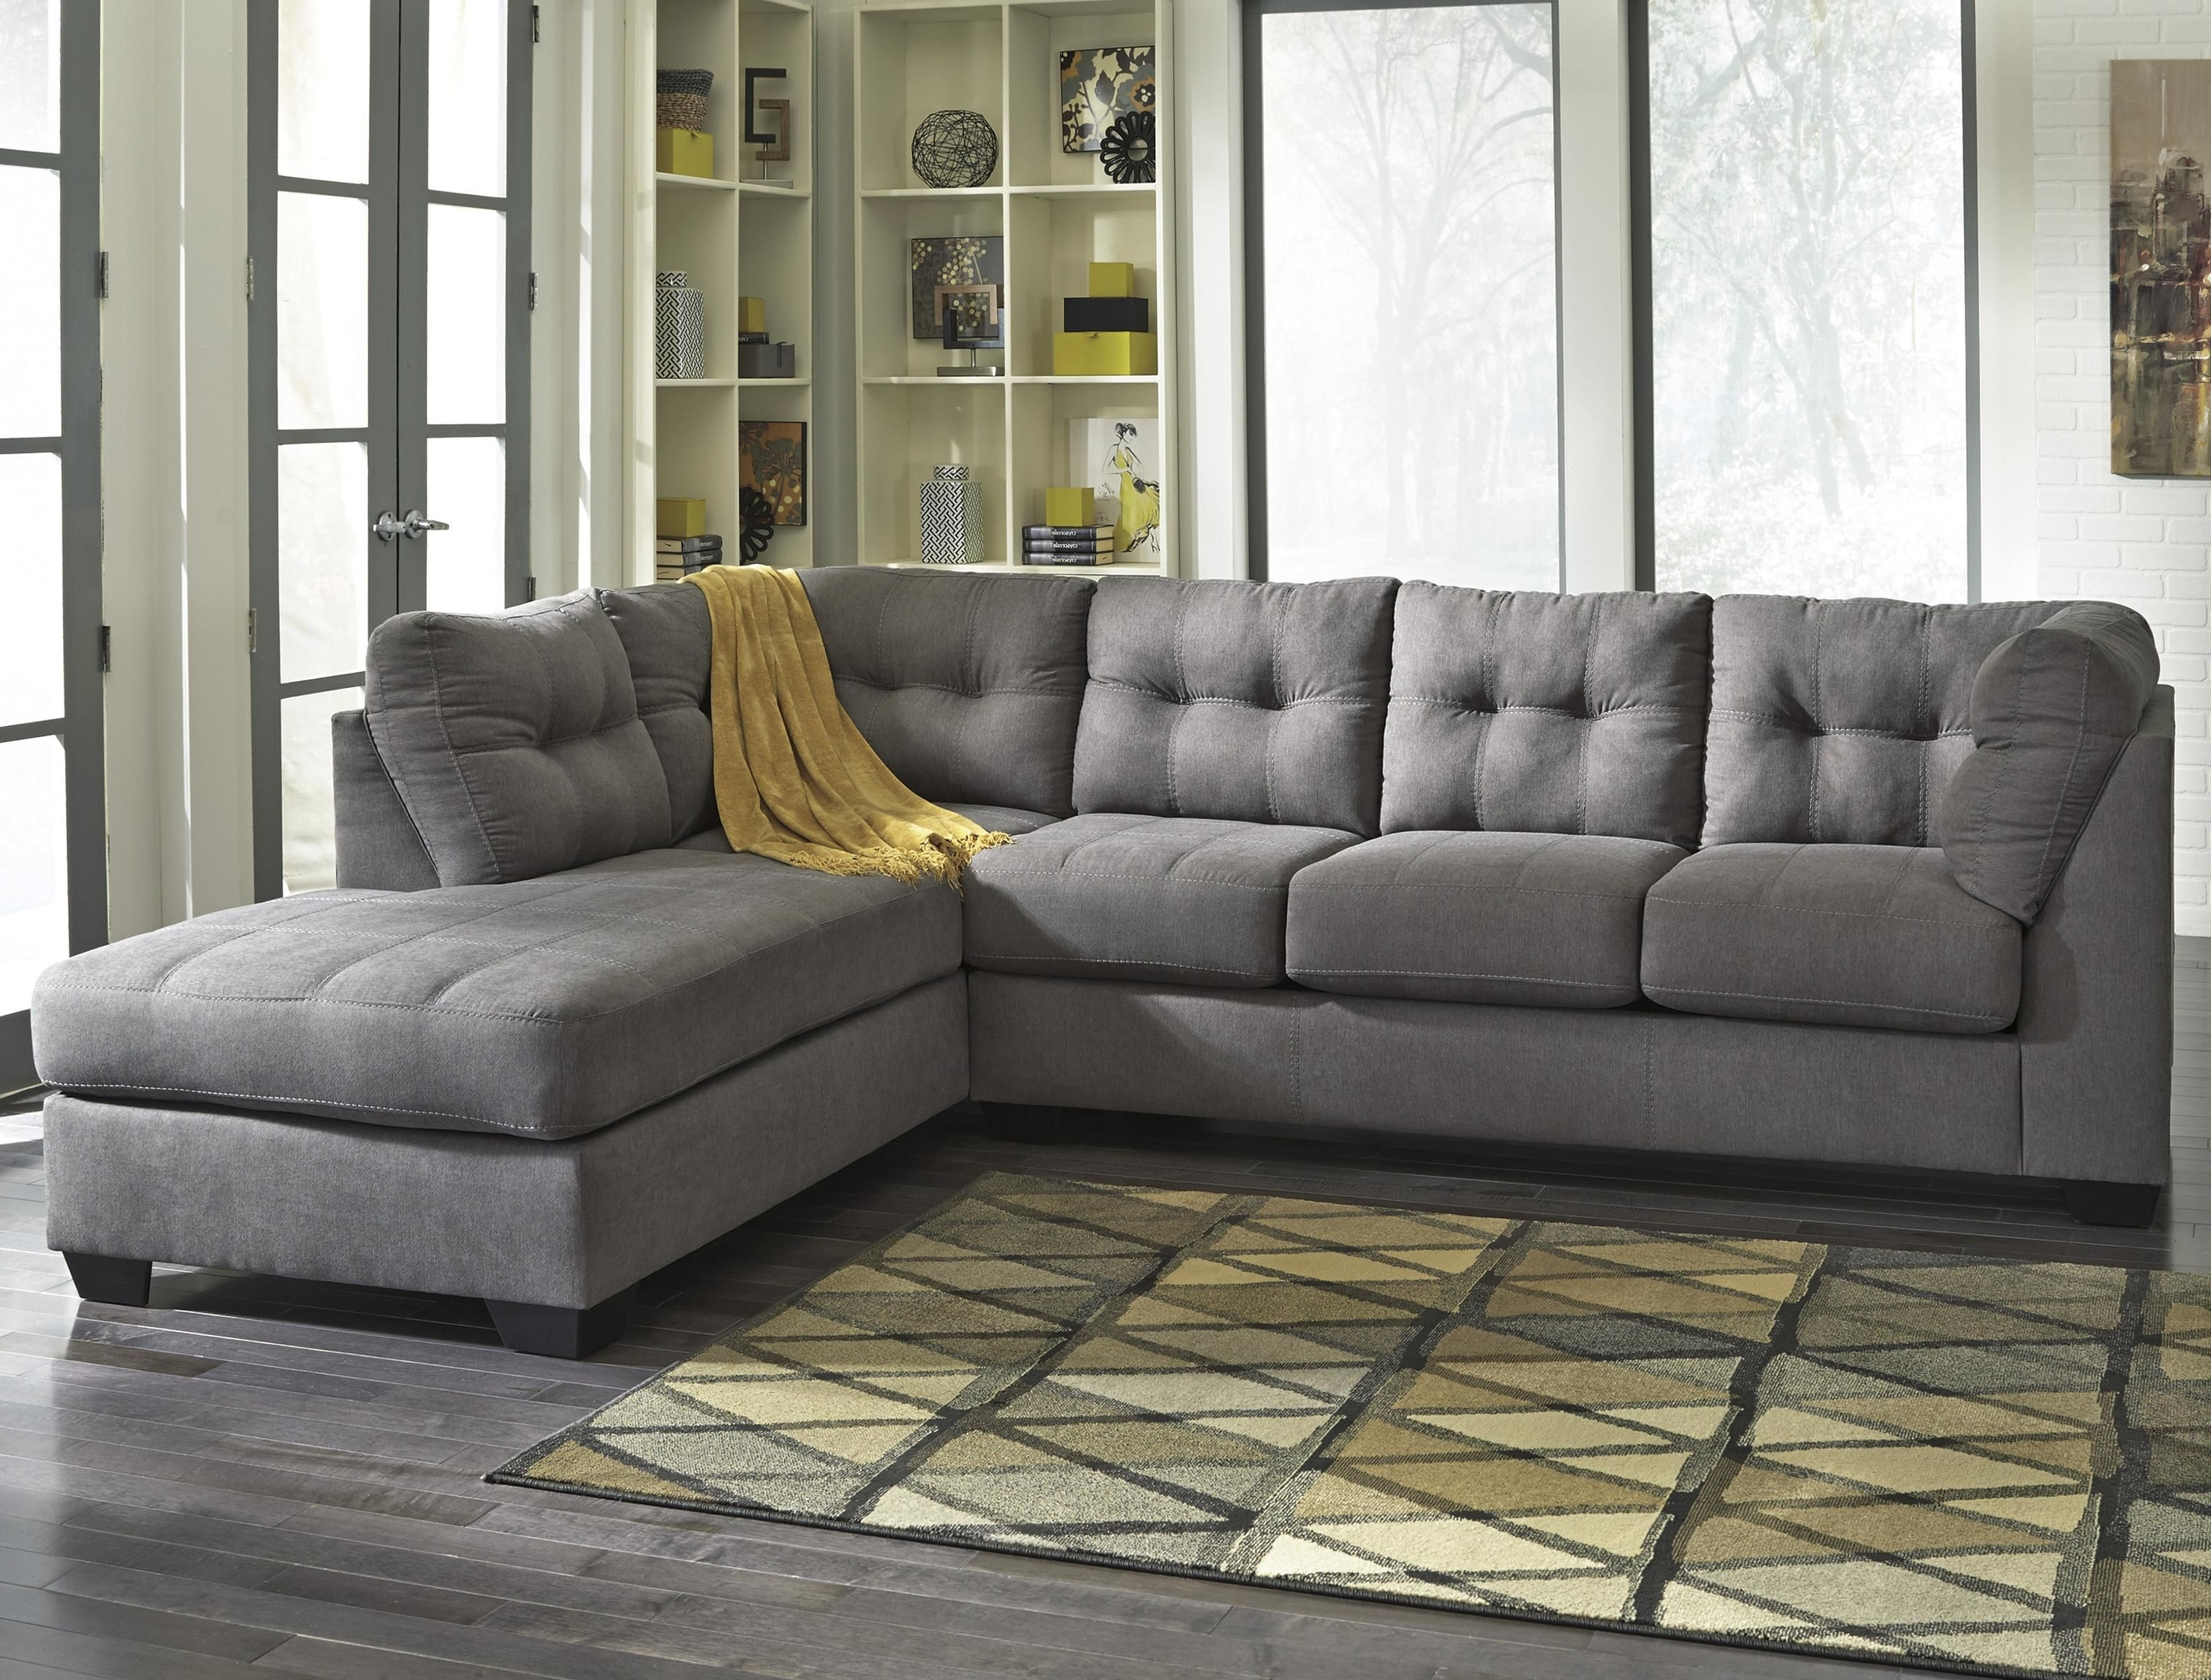 Well Known 2 Piece Sectional W/ Sleeper Sofa & Chaise Maier – Charcoal 2 Pertaining To Sectional Sofas At Buffalo Ny (View 6 of 20)